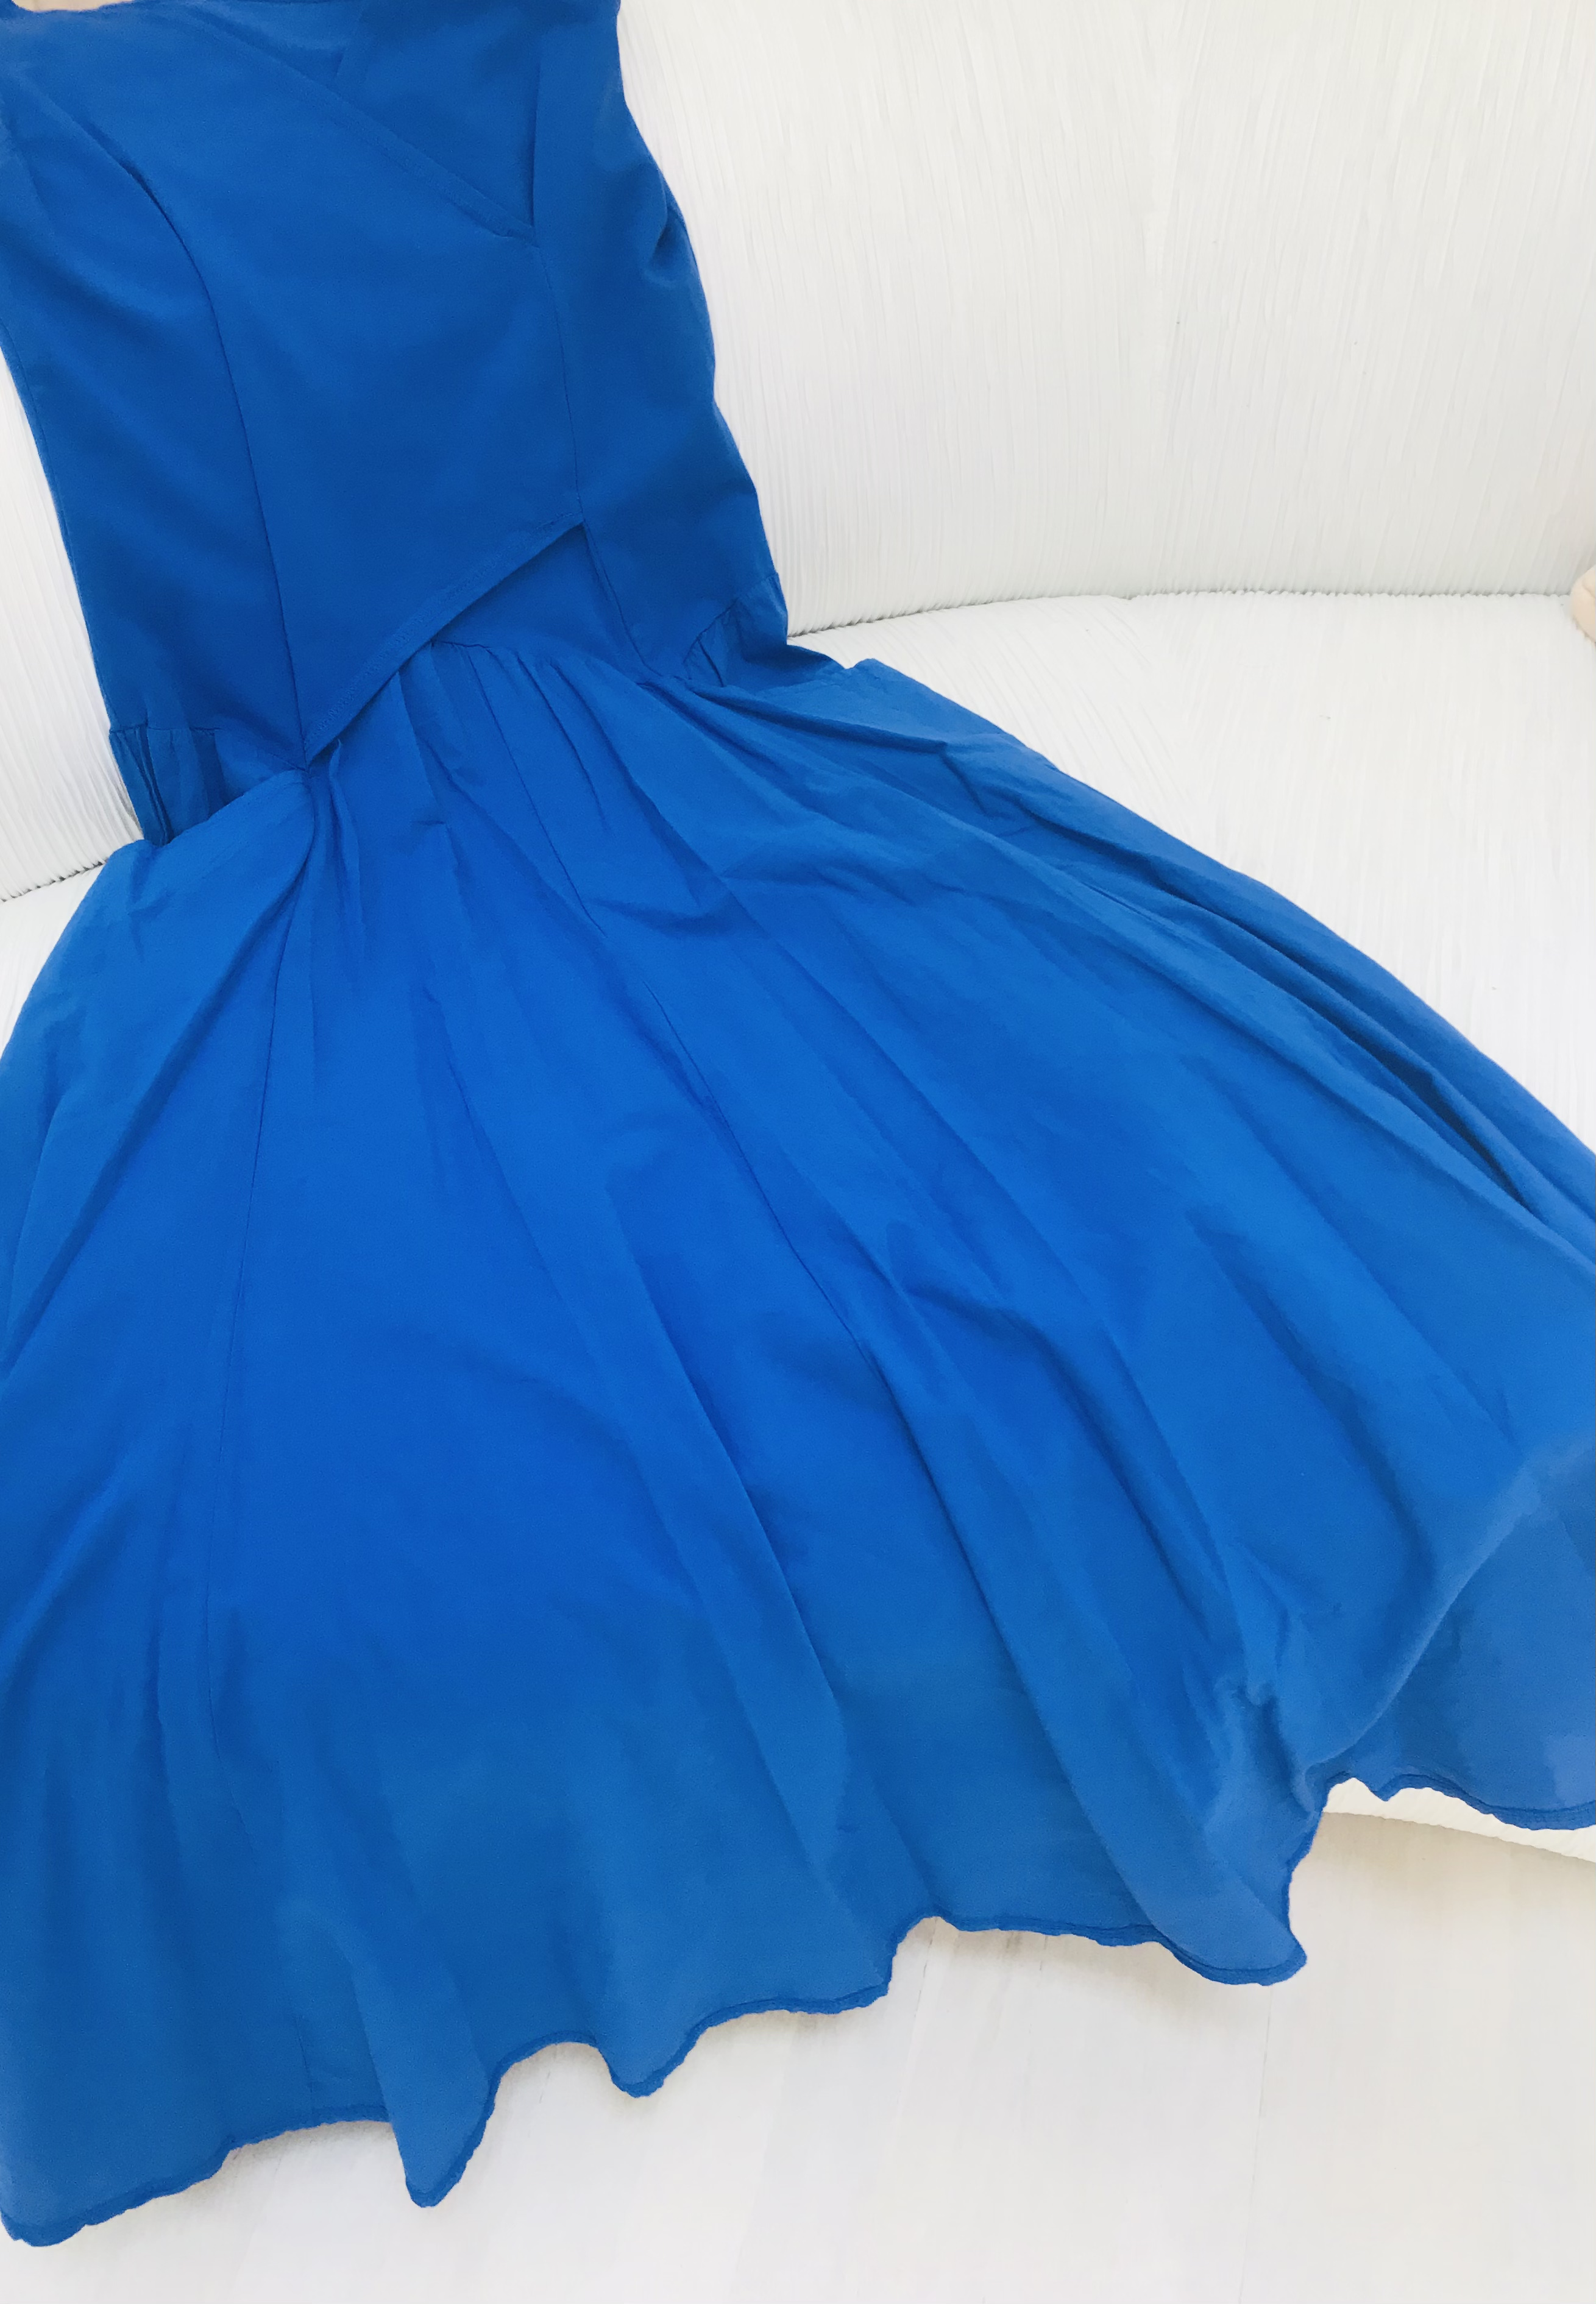 Luna Luz: Cross Over Bodice Maxi Dress (Ships Immed in Electric Blue, 1 Left!)